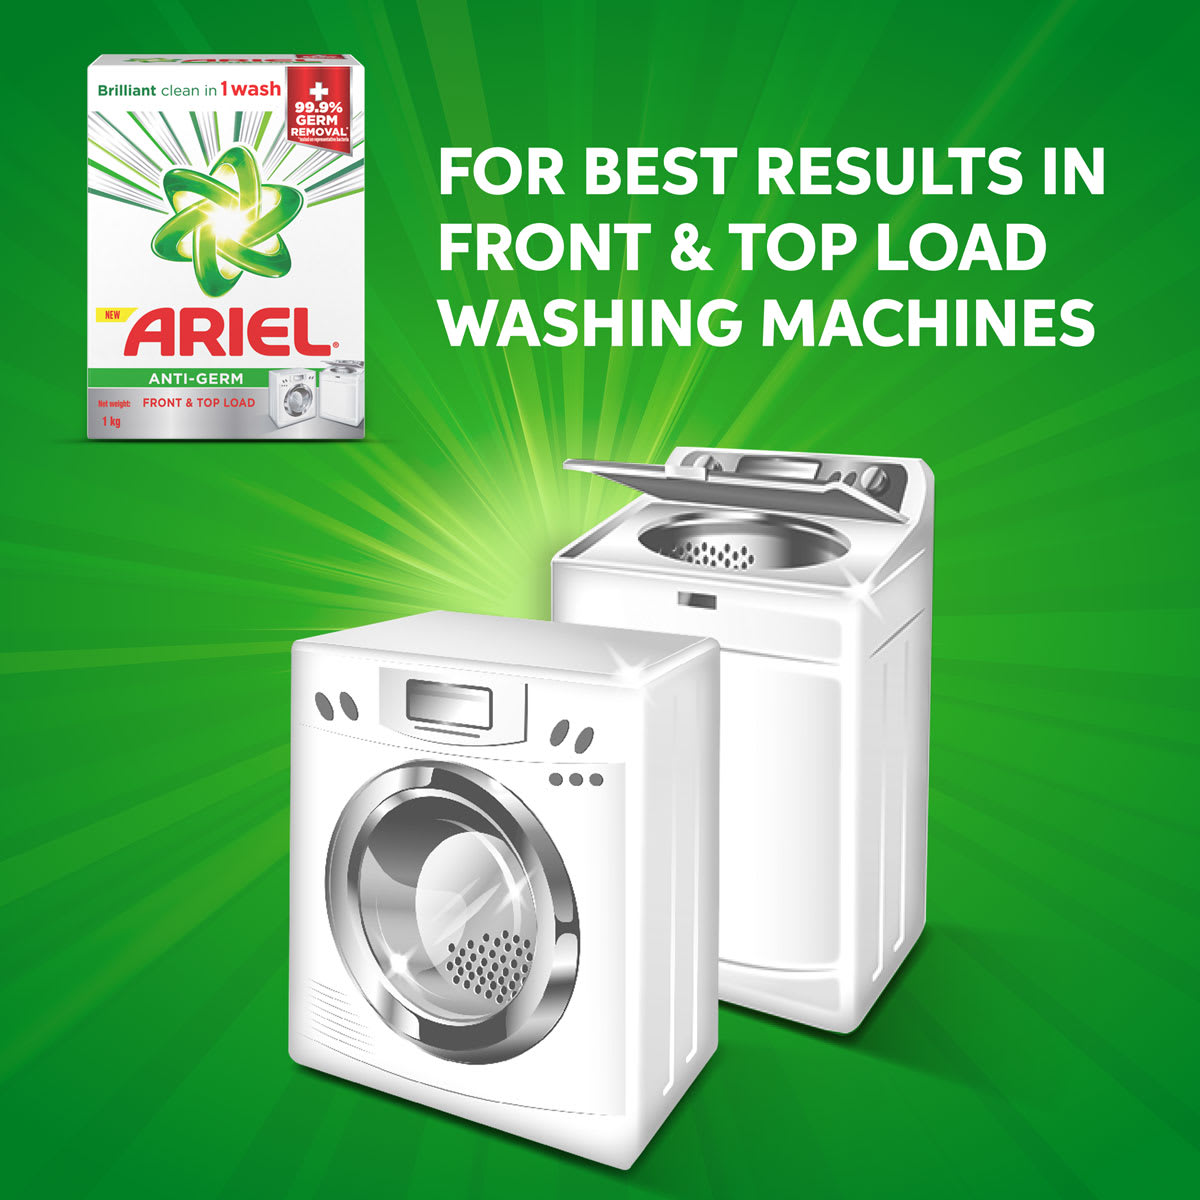 Suitable for both front and top load washing machines